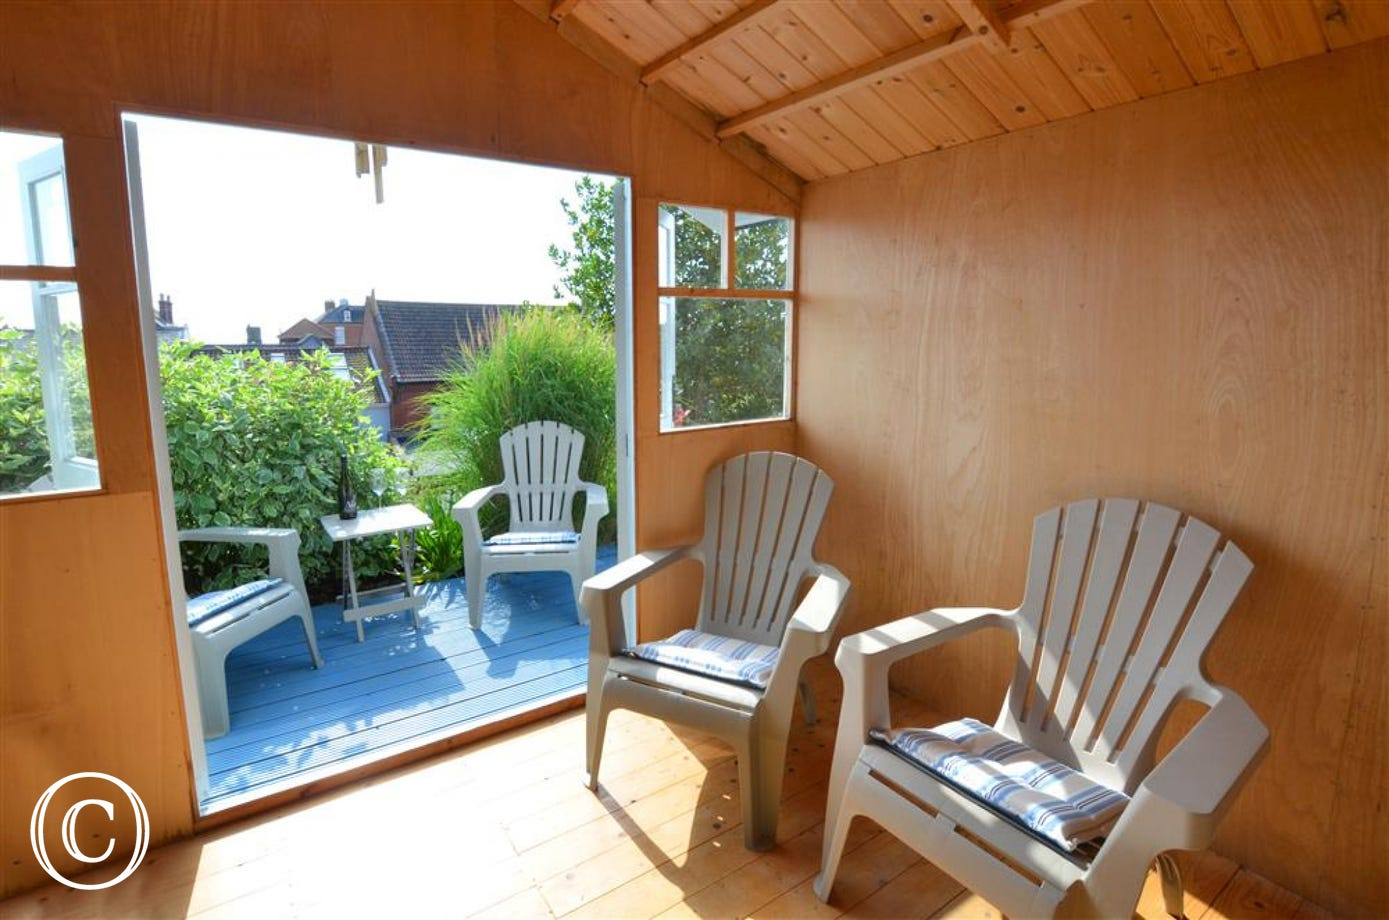 This warm amber wood is the inside of the Summer House, the doors are open in this image so you can get a feel for the decked area out front that one can sit out on to use as a viewing point.